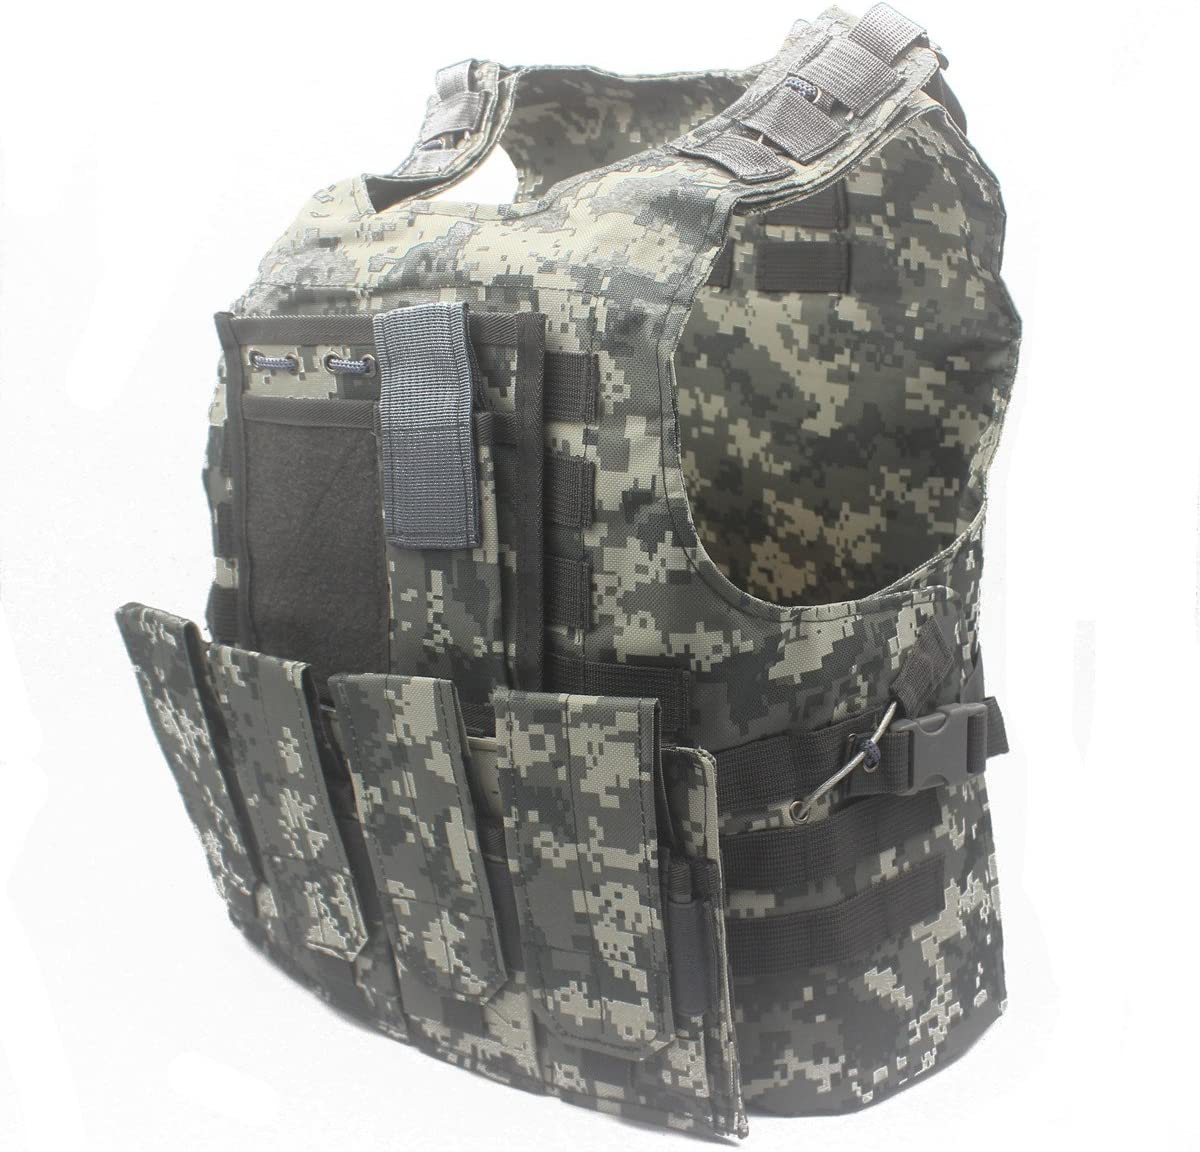 /équipement de plein air pour Airsoft camping randonn/ée arm/ée Jungle Adventure alpinisme engins tactiques Viktion Gilet tactique Veste tactique Quickly Strip off Fournitures police et les militaires